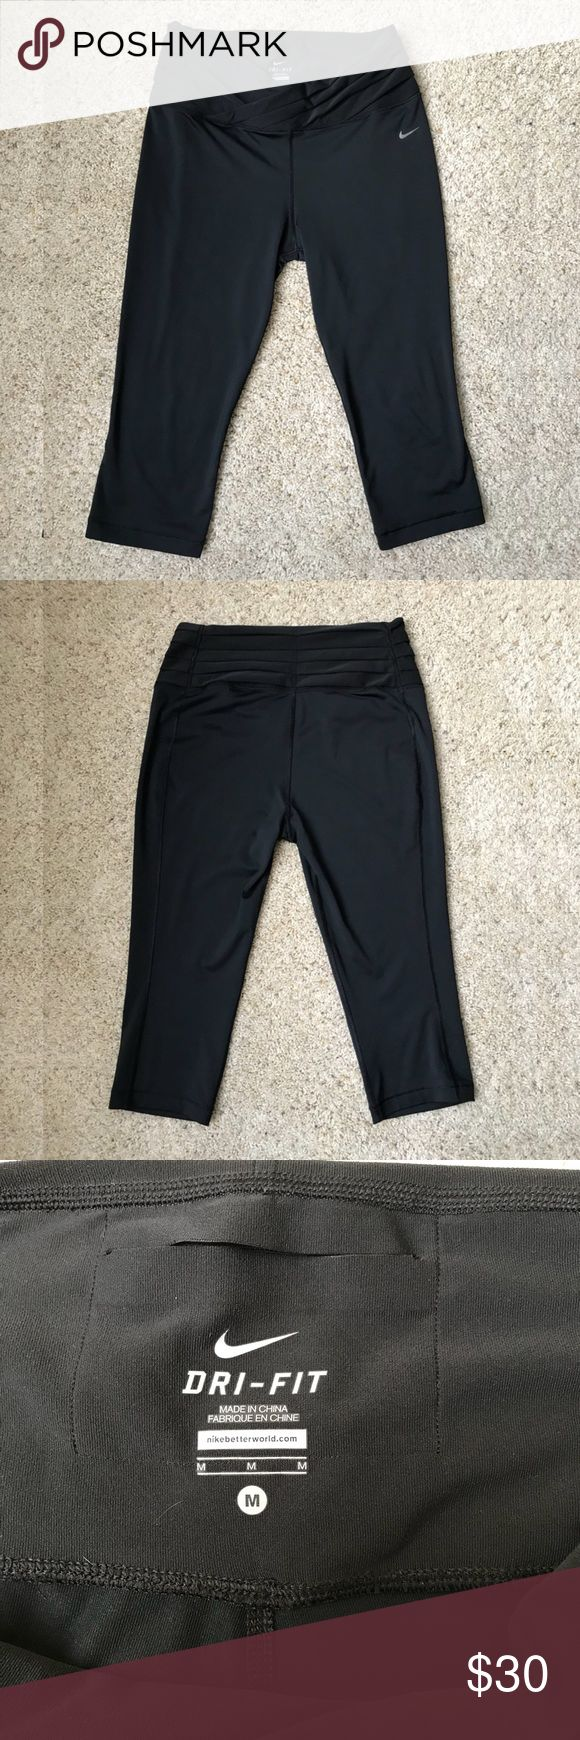 Nike Dri-FIT Black Capri Leggings Sporty Nike Dri-FIT Black Capri Leggings!  🏃🏻♀️ Size M 🏃🏻♀️ super stretchy & soft 🏃🏻♀️ ribbed waist detail 🏃🏻♀️ tapered waistline- very flattering! 🏃🏻♀️ small pocket for stuff  Materials Body: 88% Recycled Polyester  12% Spandex  Waistband: 88% Polyester  12% Spandex Gusset Lining: 100% Polyester Nike Pants Capris